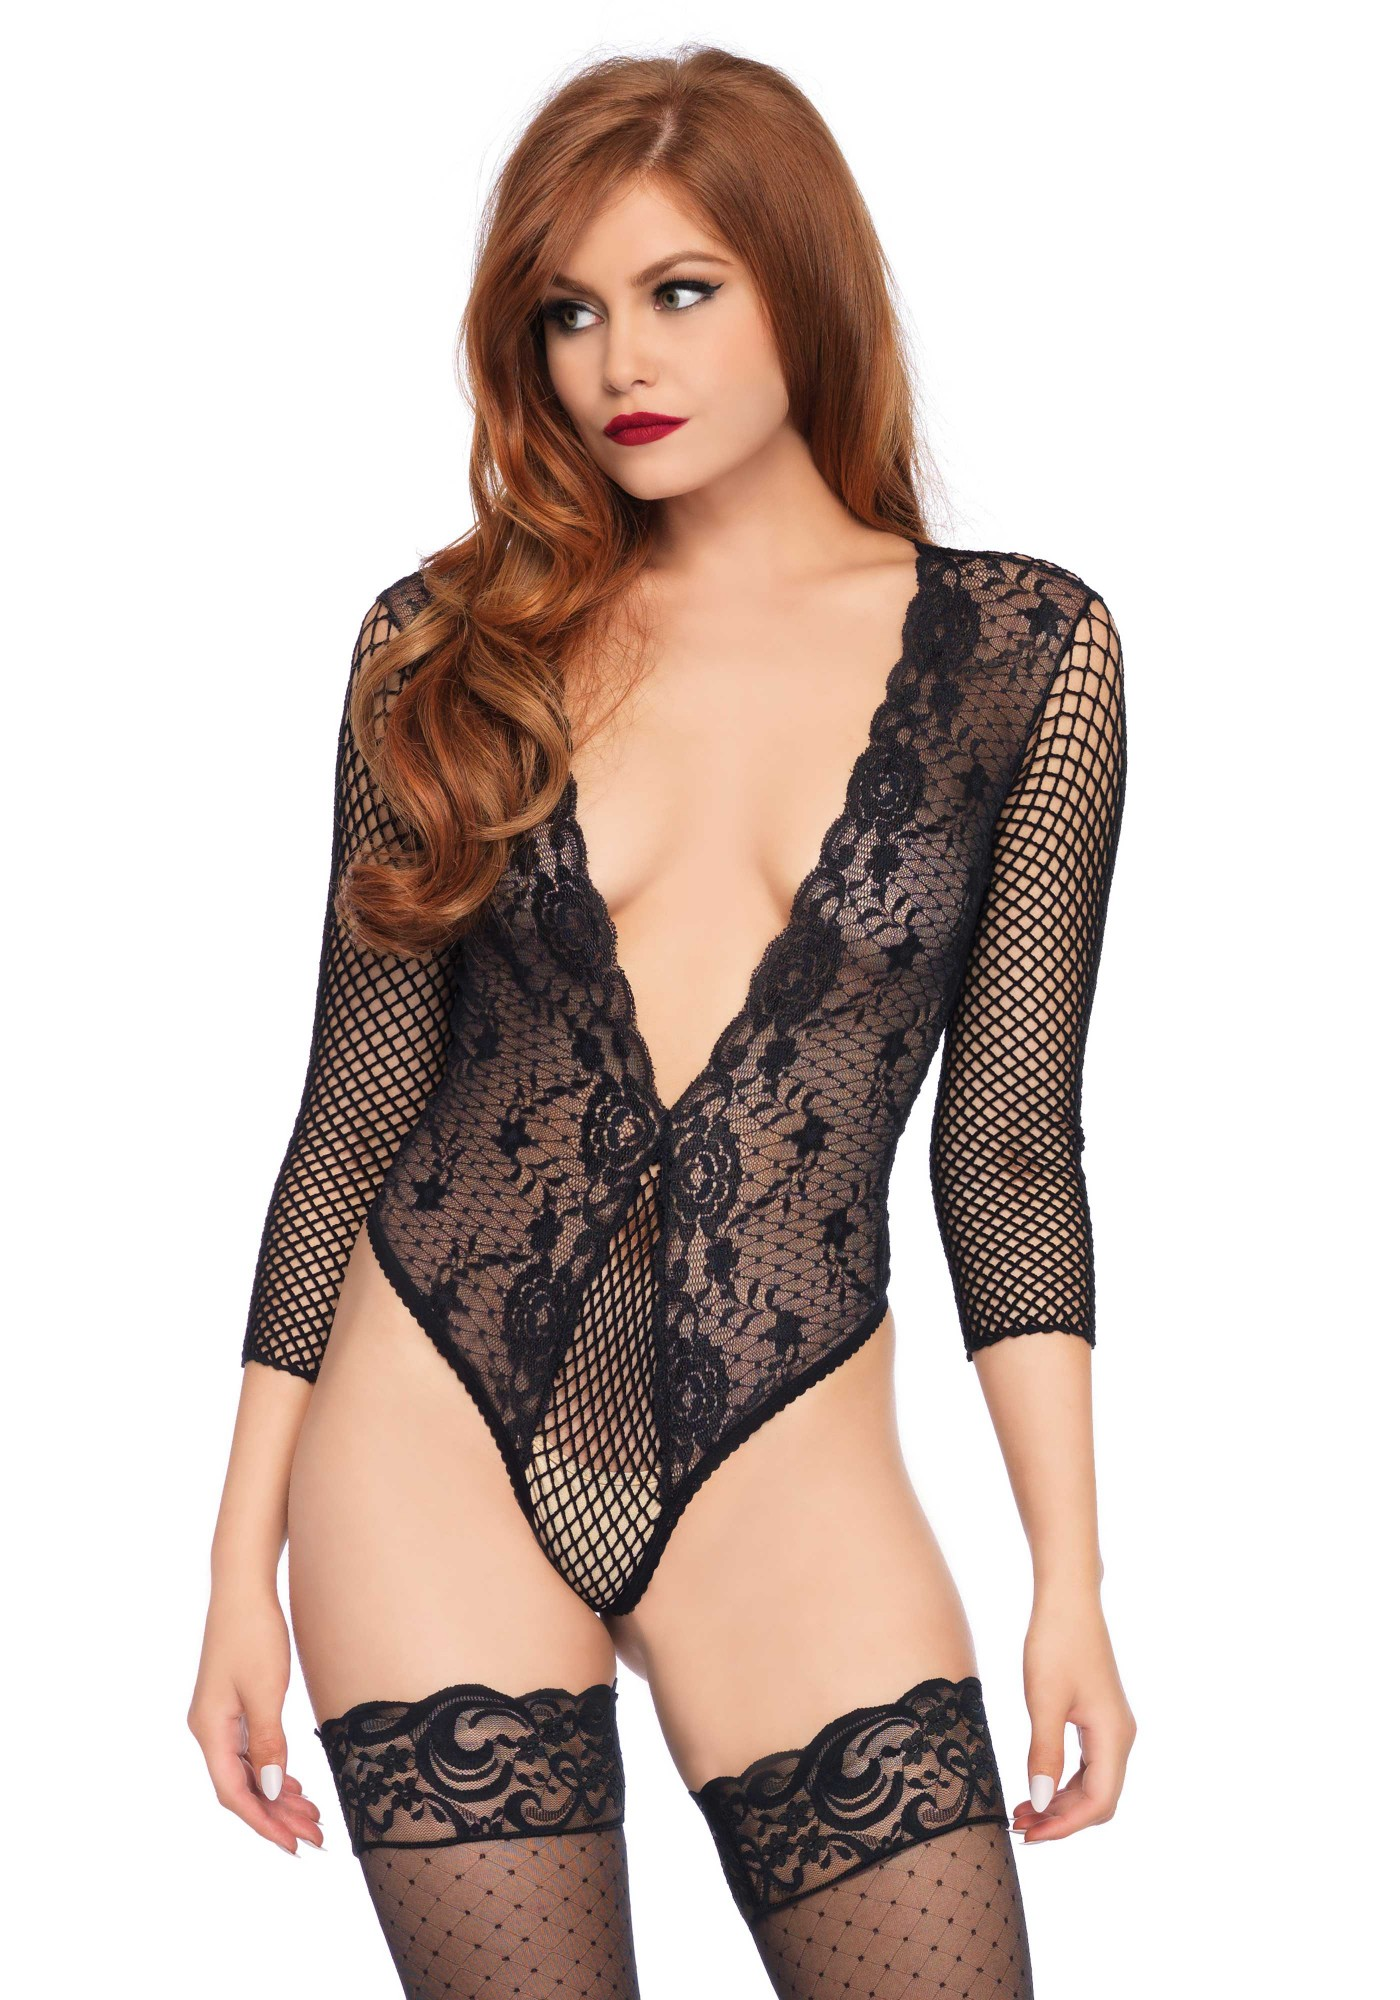 High Cut Lace and Net Teddy